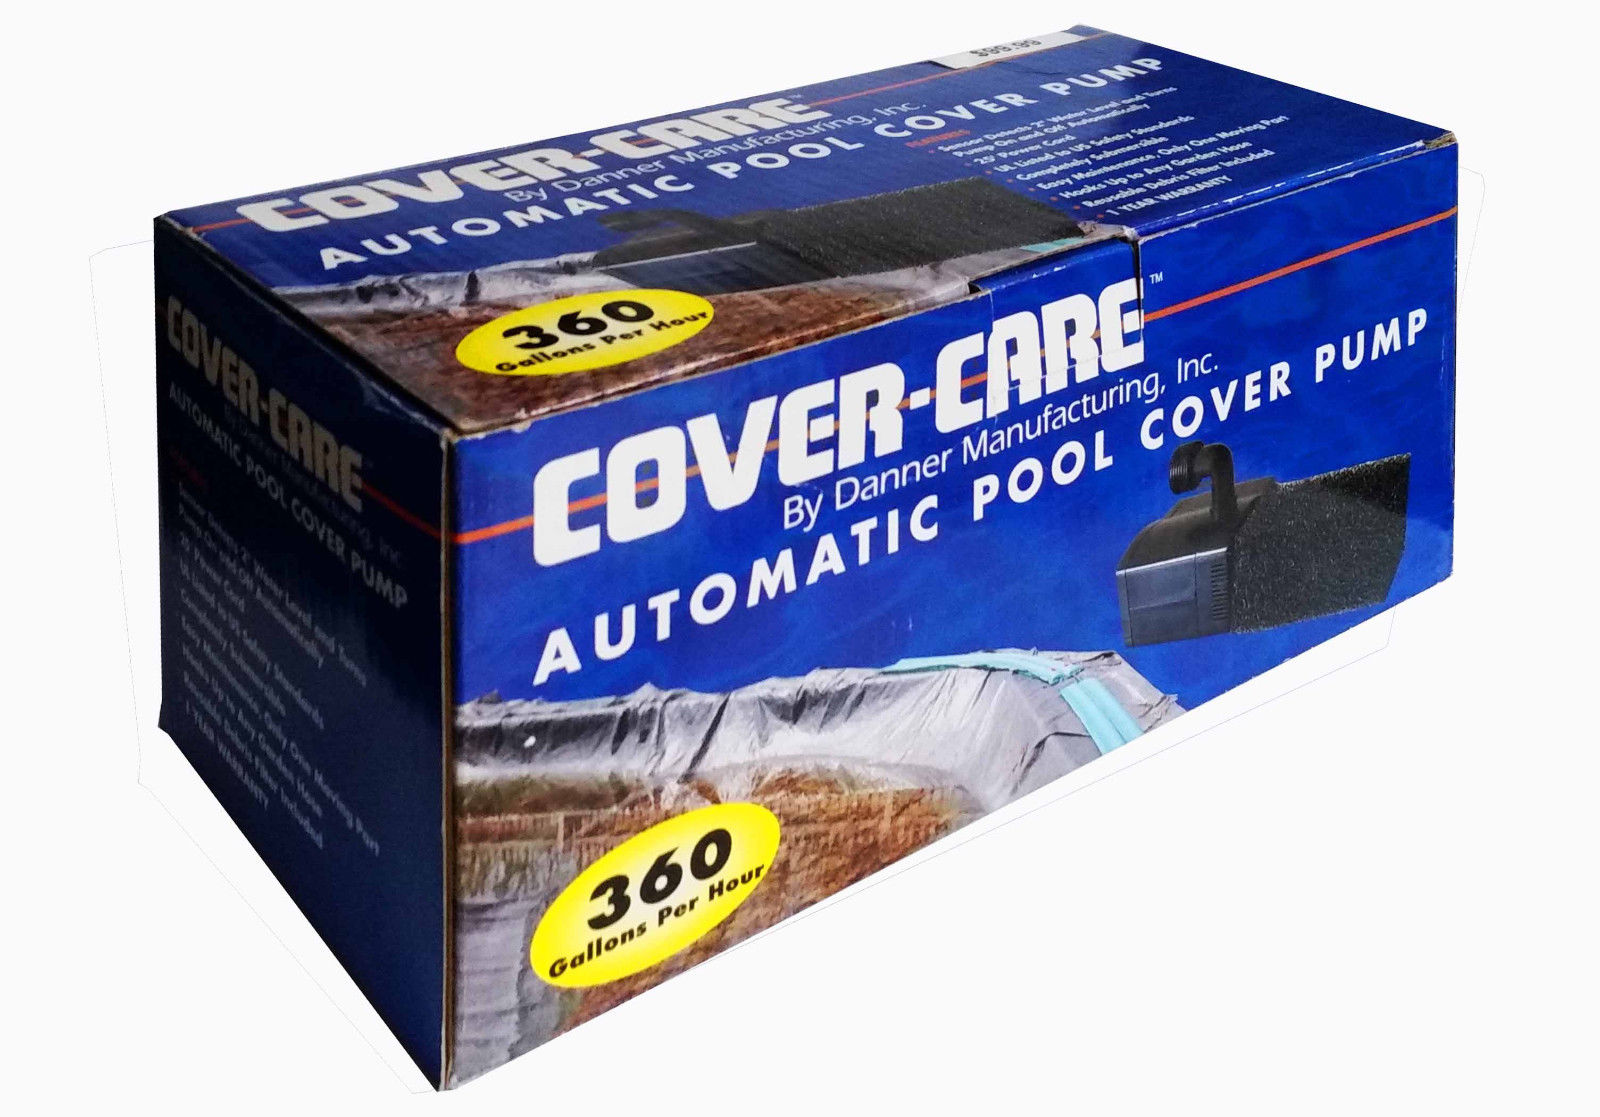 Danner Mfg. Cover-Care 360 Automatic Pool-Cover pump